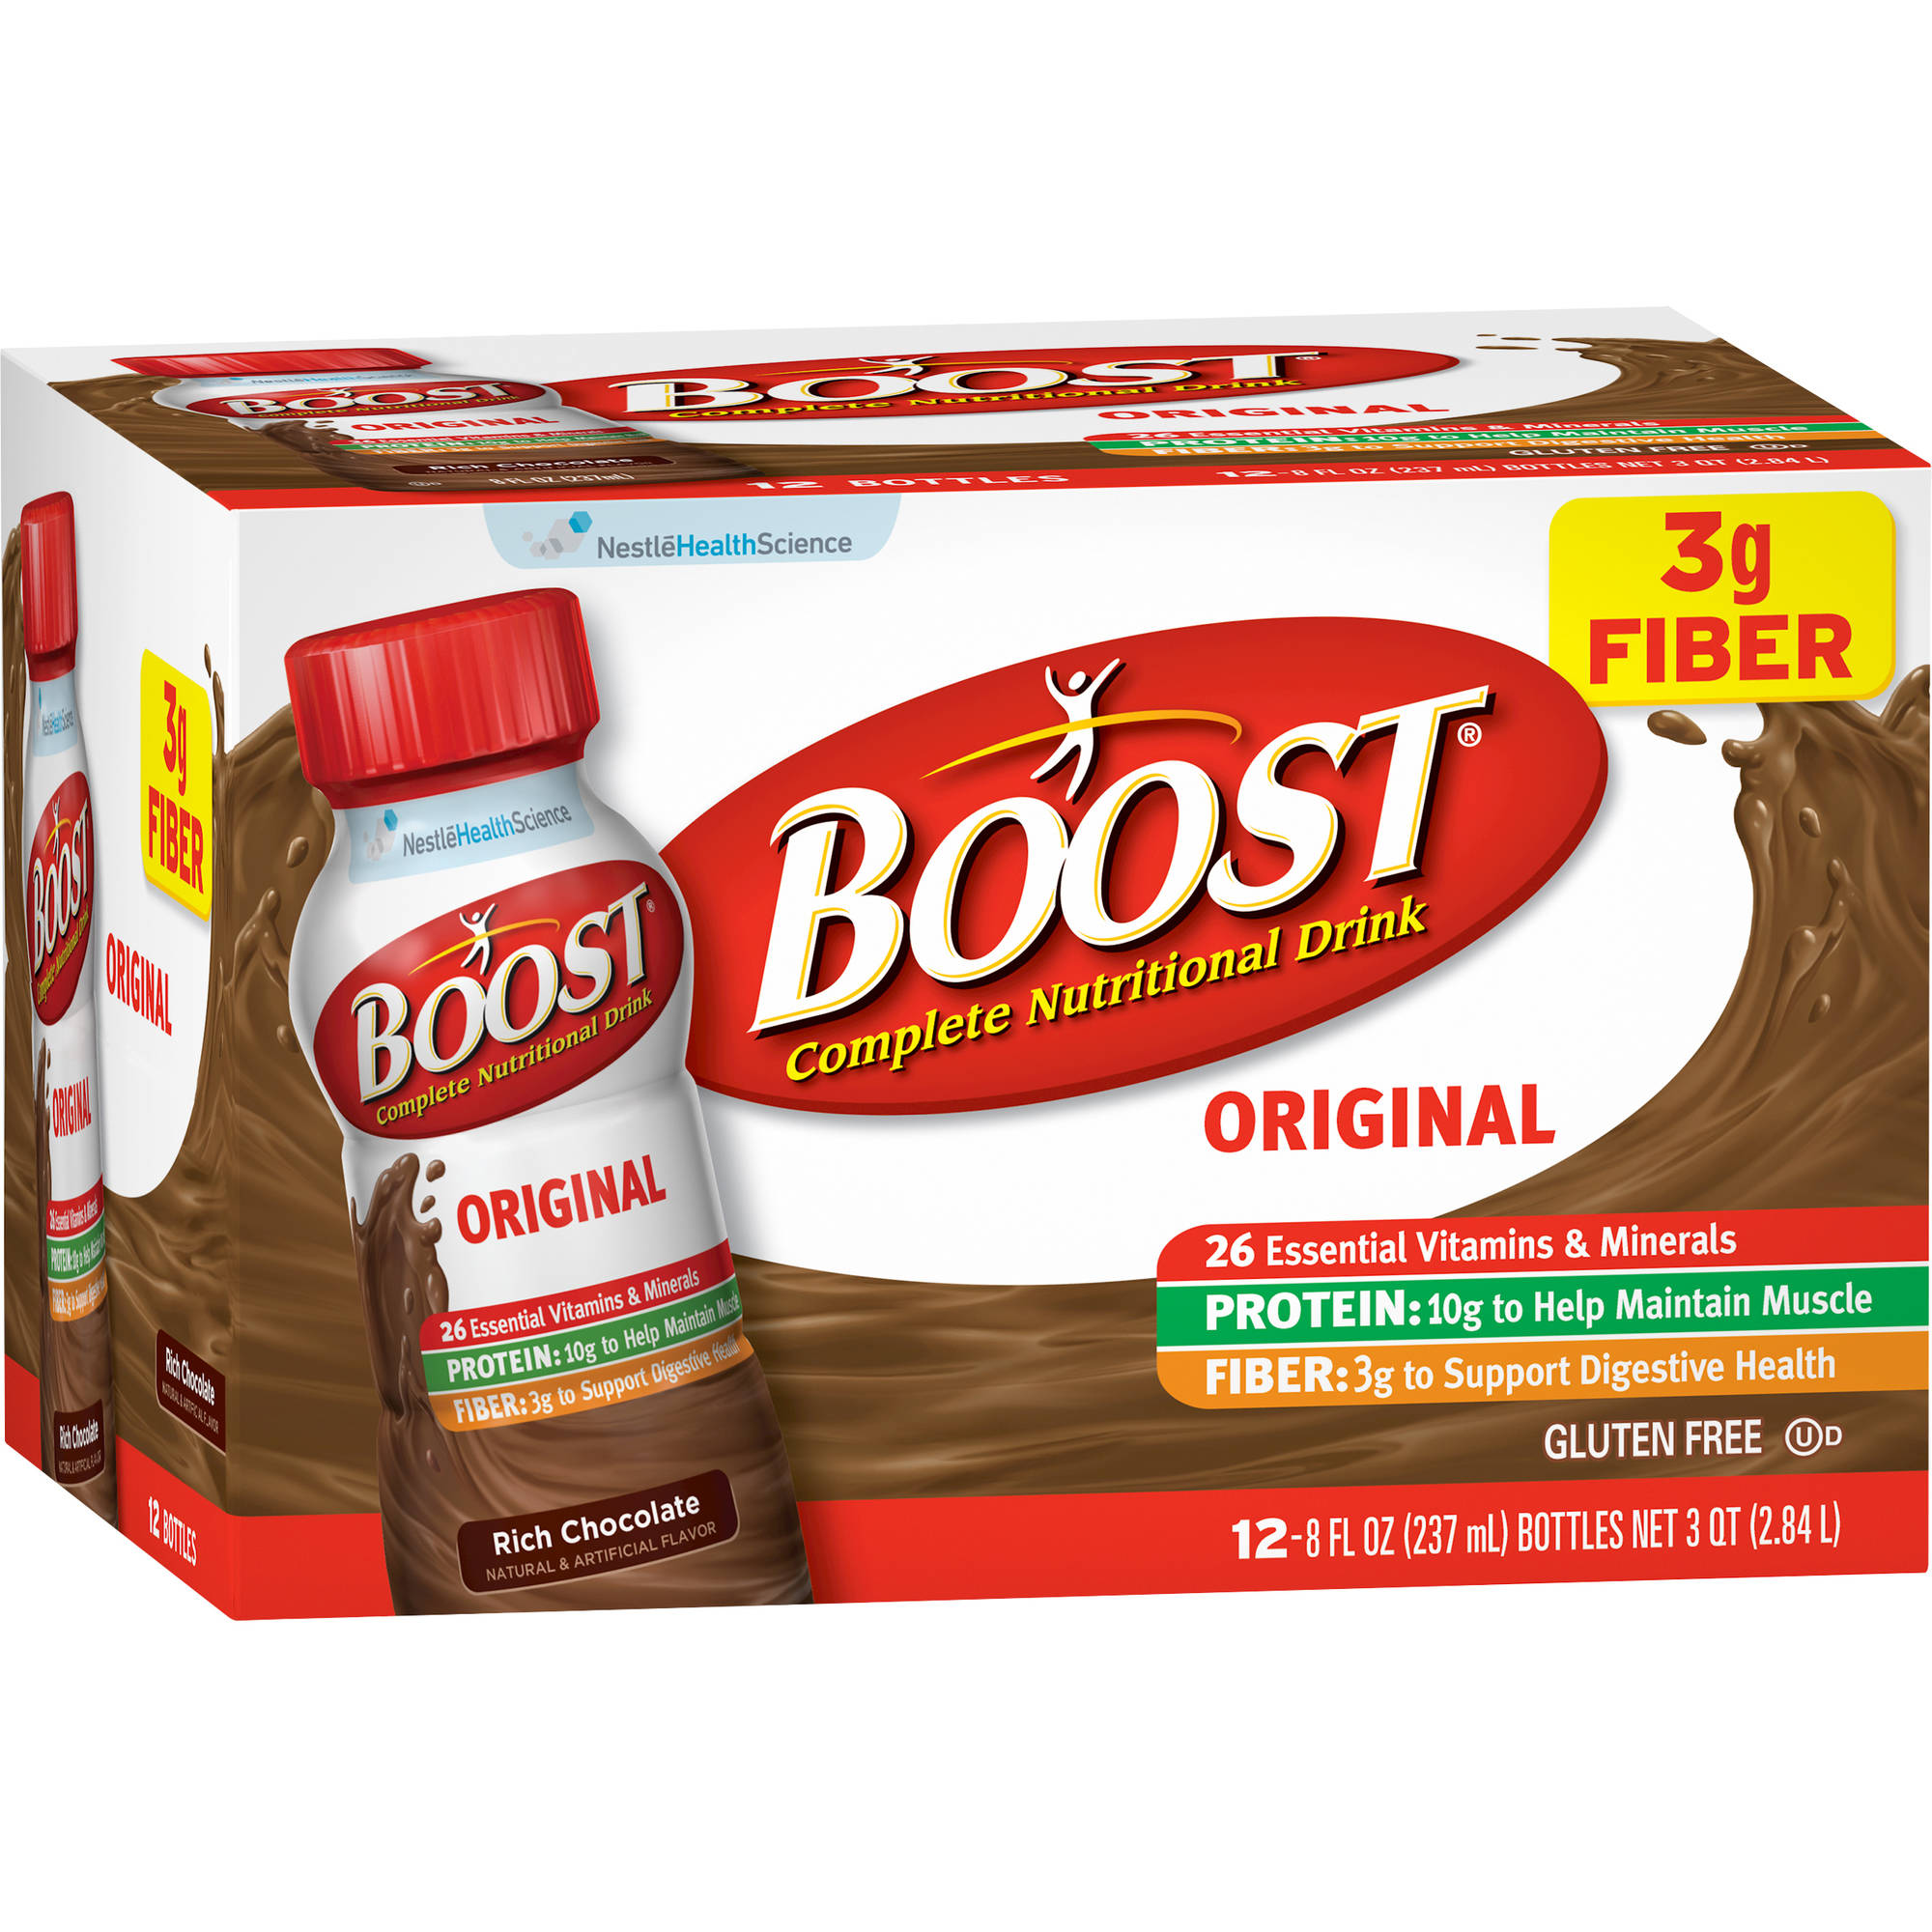 Boost Original Rich Chocolate Complete Nutritional Drinks, 8 fl oz, 12 count